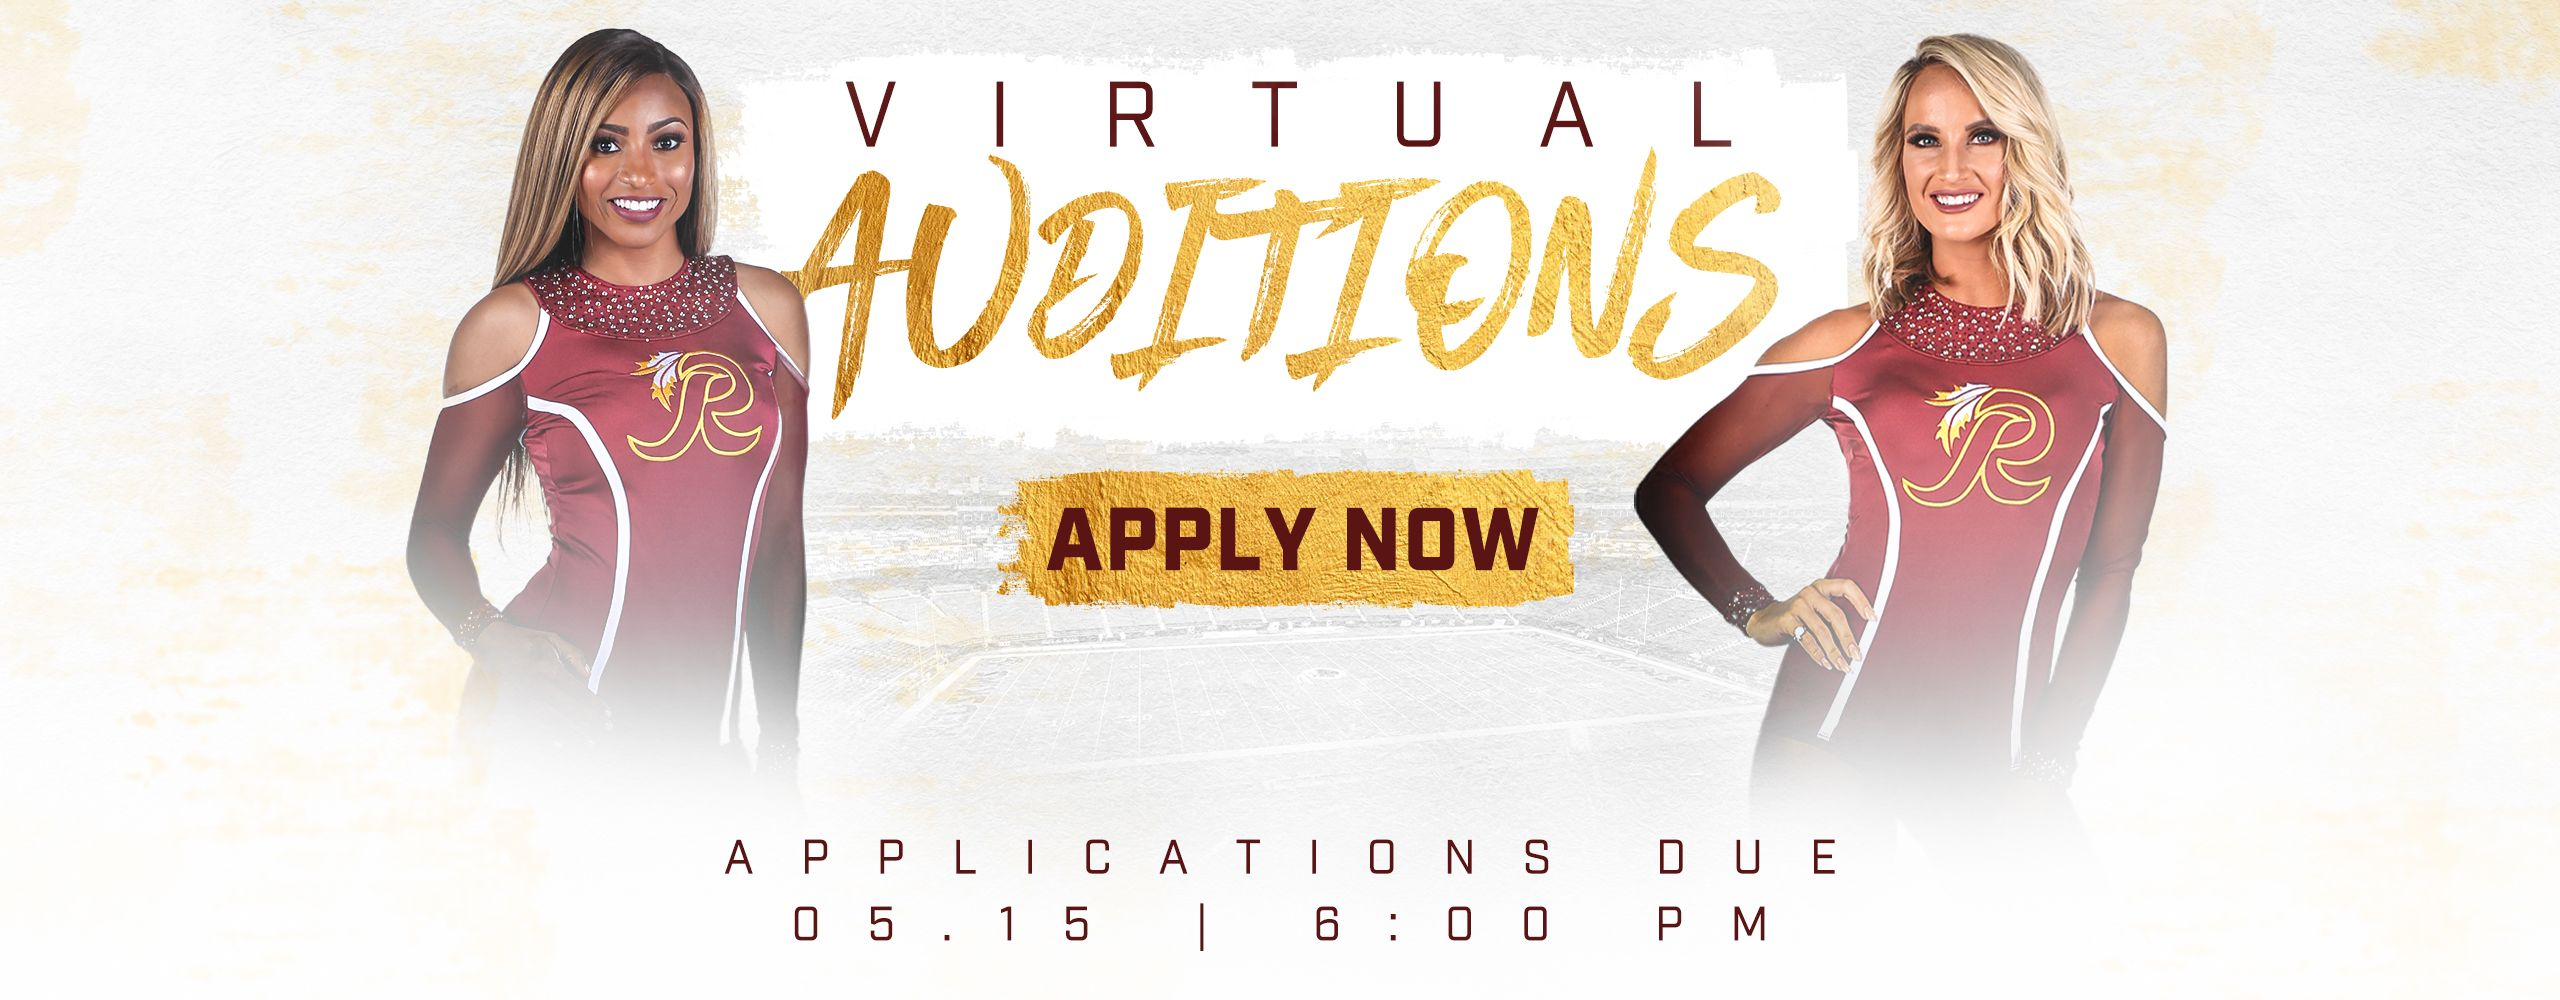 20_CHEER_VirtualAuditions_WEB_2 (1)